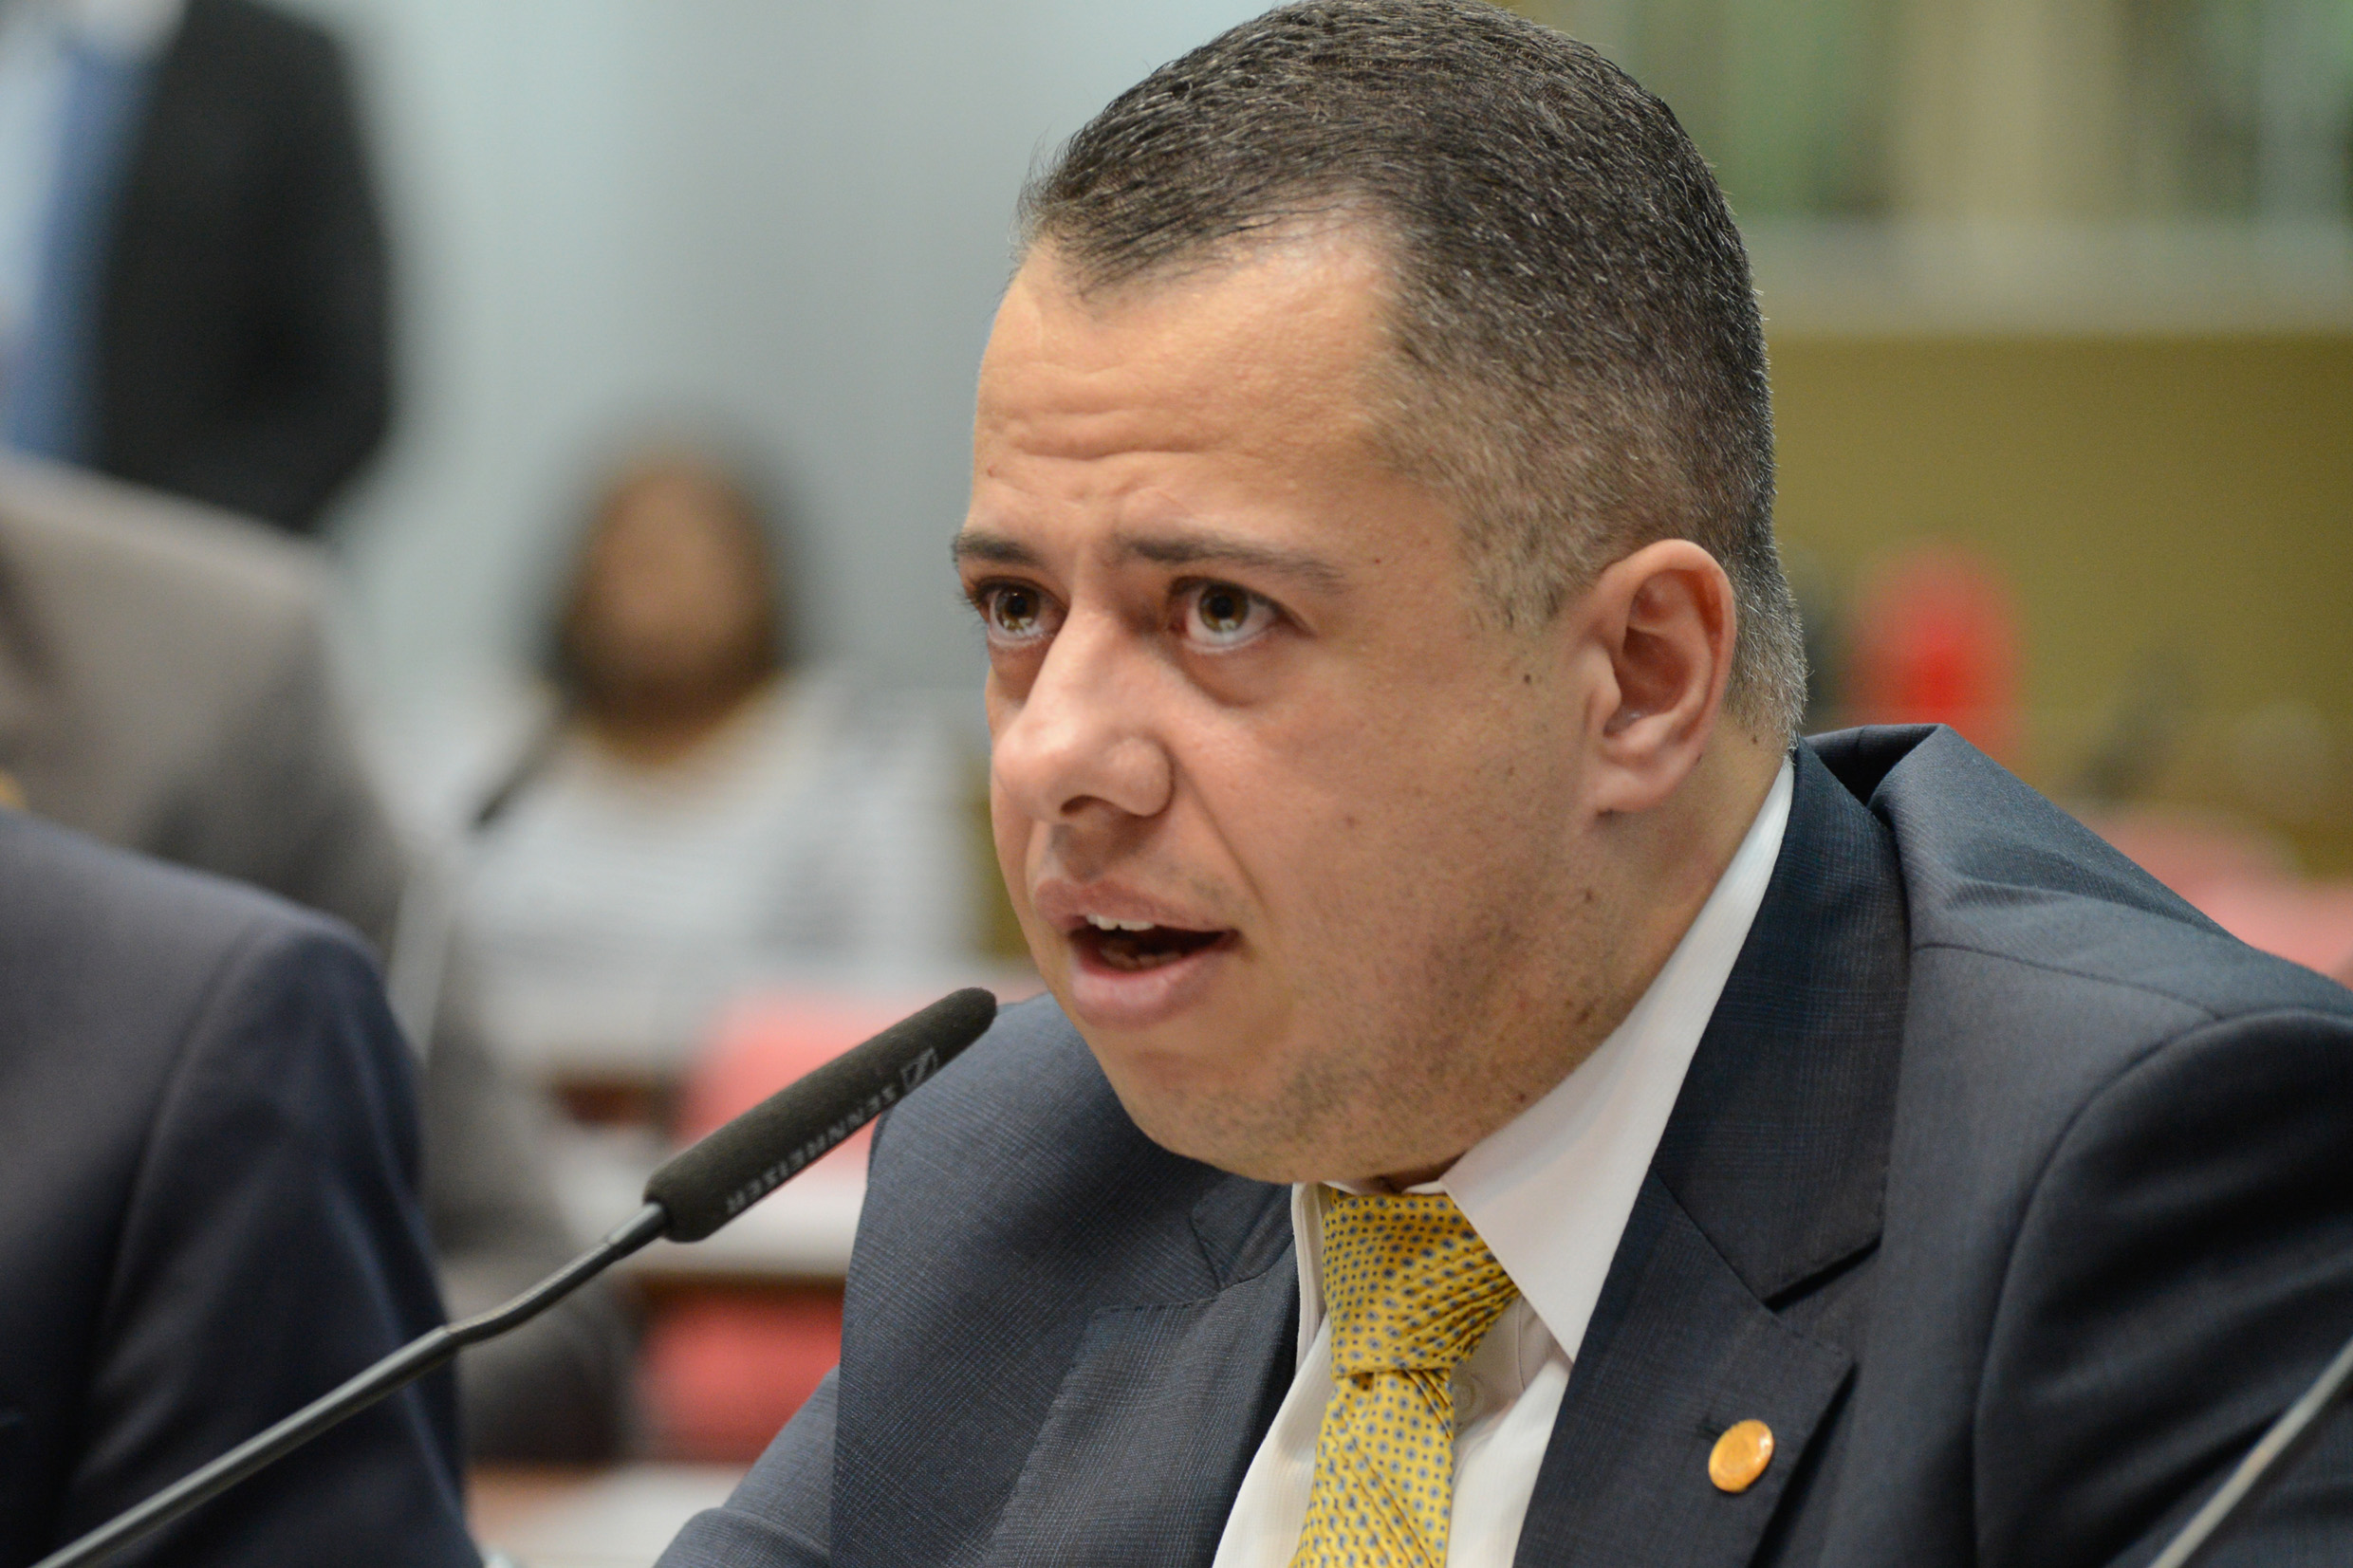 Wellington Moura<a style='float:right' href='https://www3.al.sp.gov.br/repositorio/noticia/N-06-2016/fg190061.jpg' target=_blank><img src='/_img/material-file-download-white.png' width='14px' alt='Clique para baixar a imagem'></a>